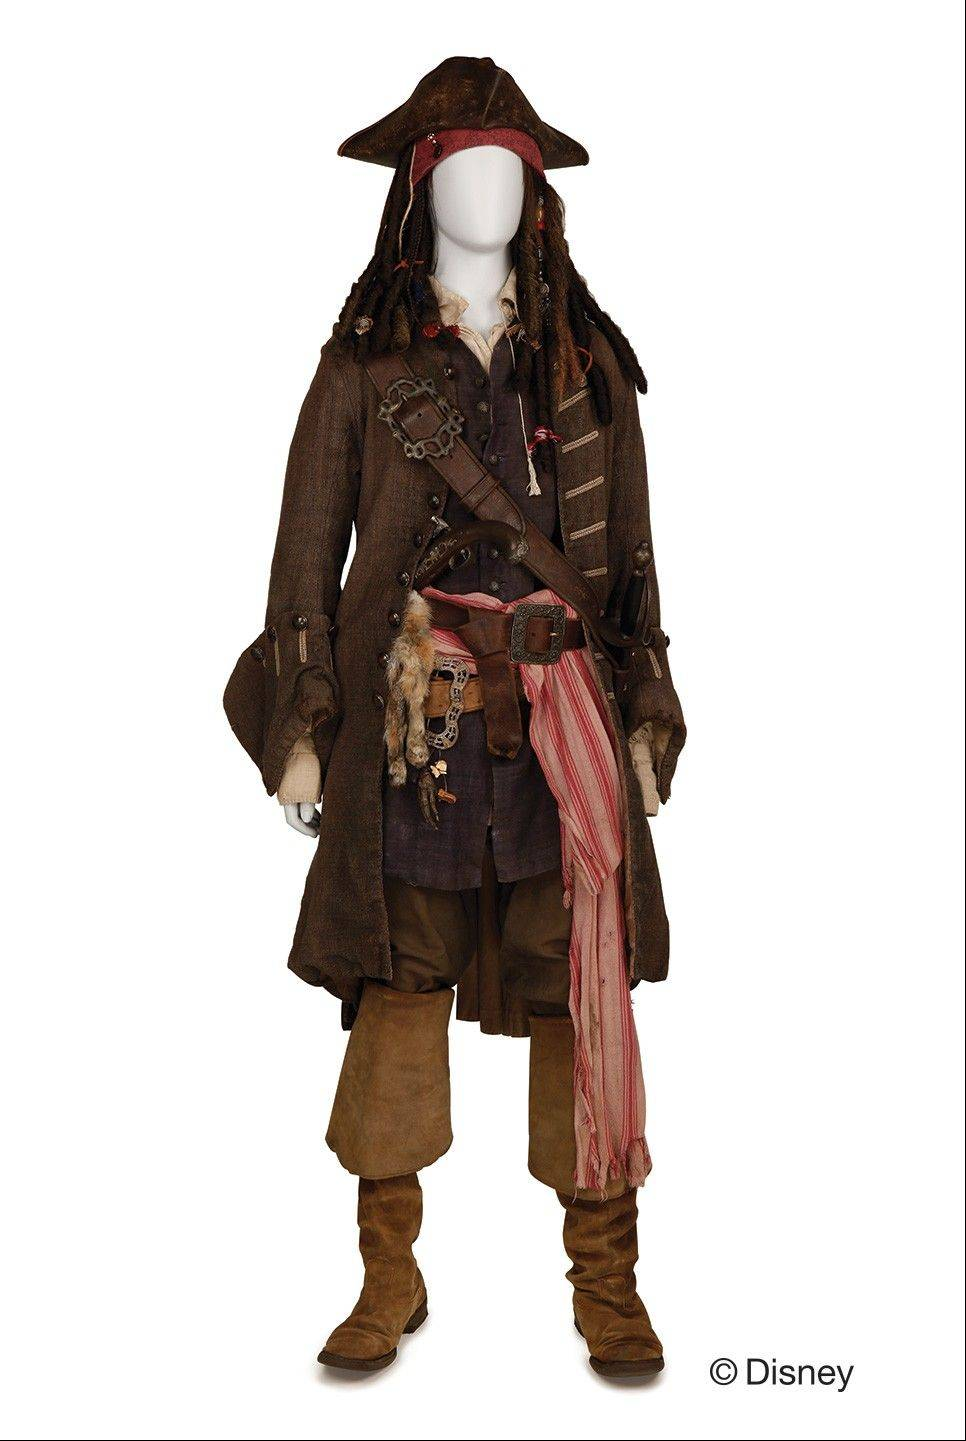 "A Captain Jack Sparrow costume worn by Johnny Depp in the ""Pirates of the Caribbean"" film franchise is on display at the Museum of Science and Industry in Chicago."